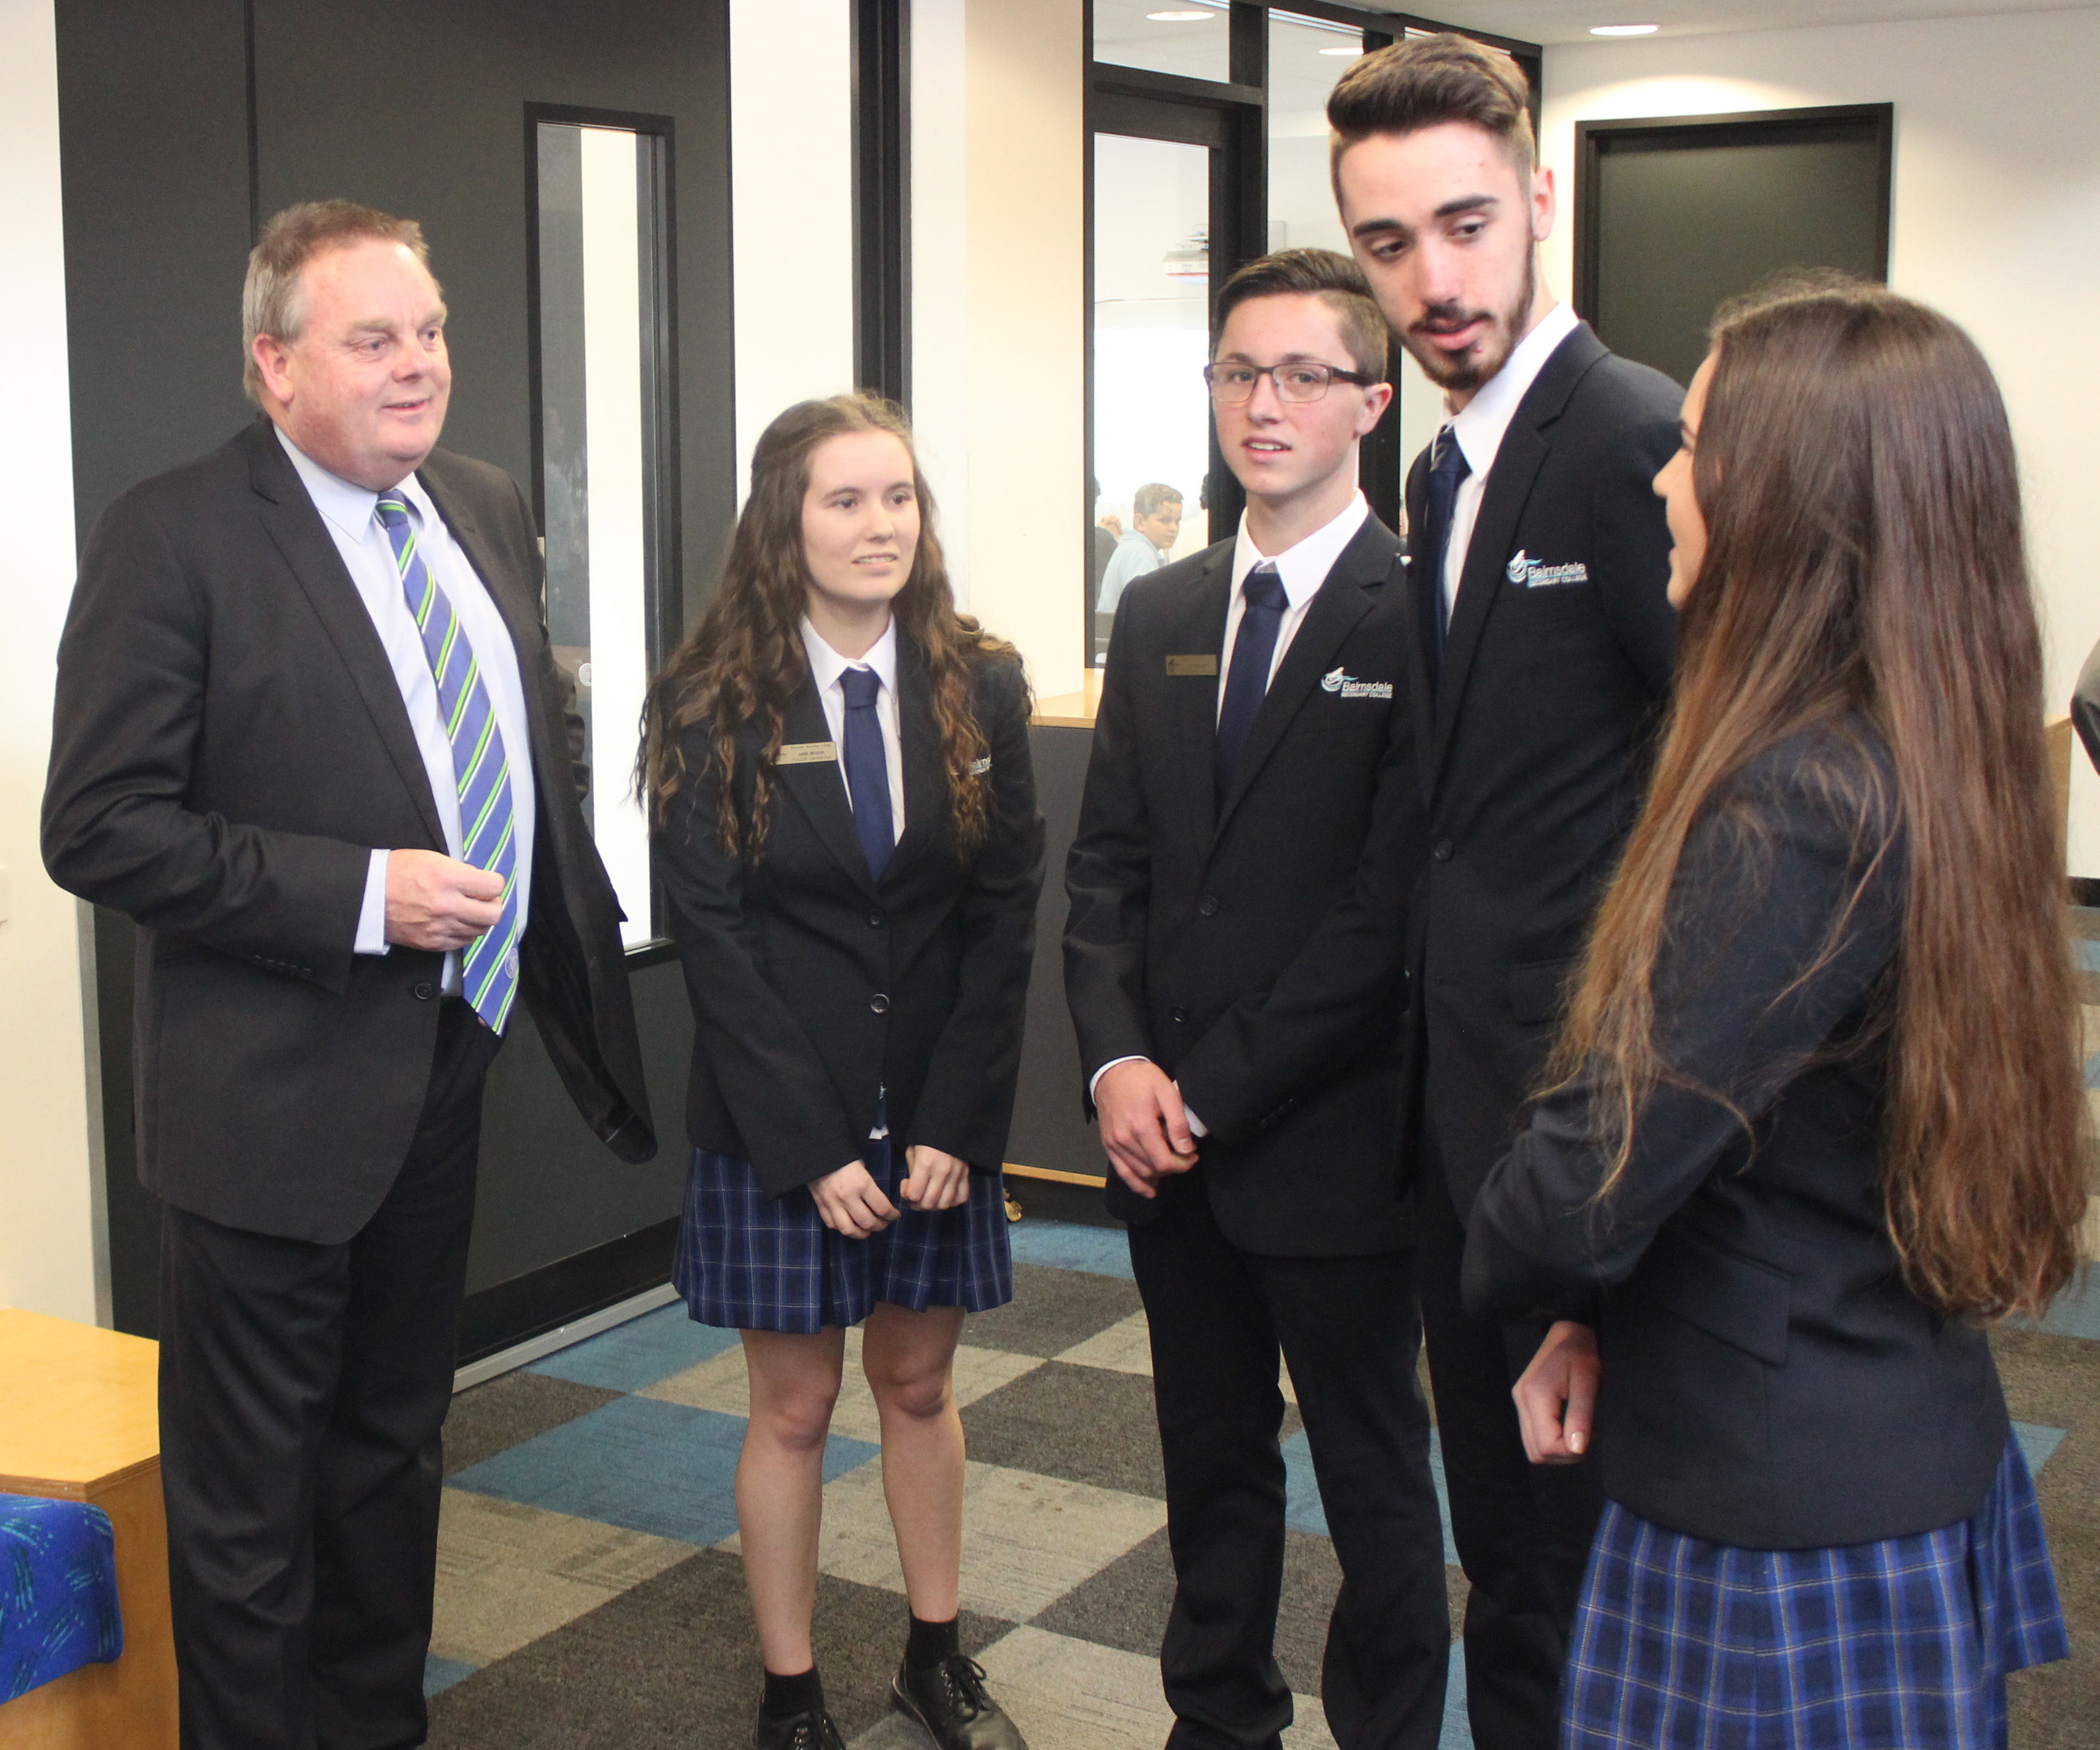 Caption: Gippsland East Nationals MP, Tim Bull, speaking with senior Bairnsdale Secondary College students Anna Wilson, Jacob Ellett, Jarrod Stephens and Zoe Lanigan, has announced a Liberal Nationals Government will create the Rural Tertiary Network to better support students who study away from home at the completion of their schooling.